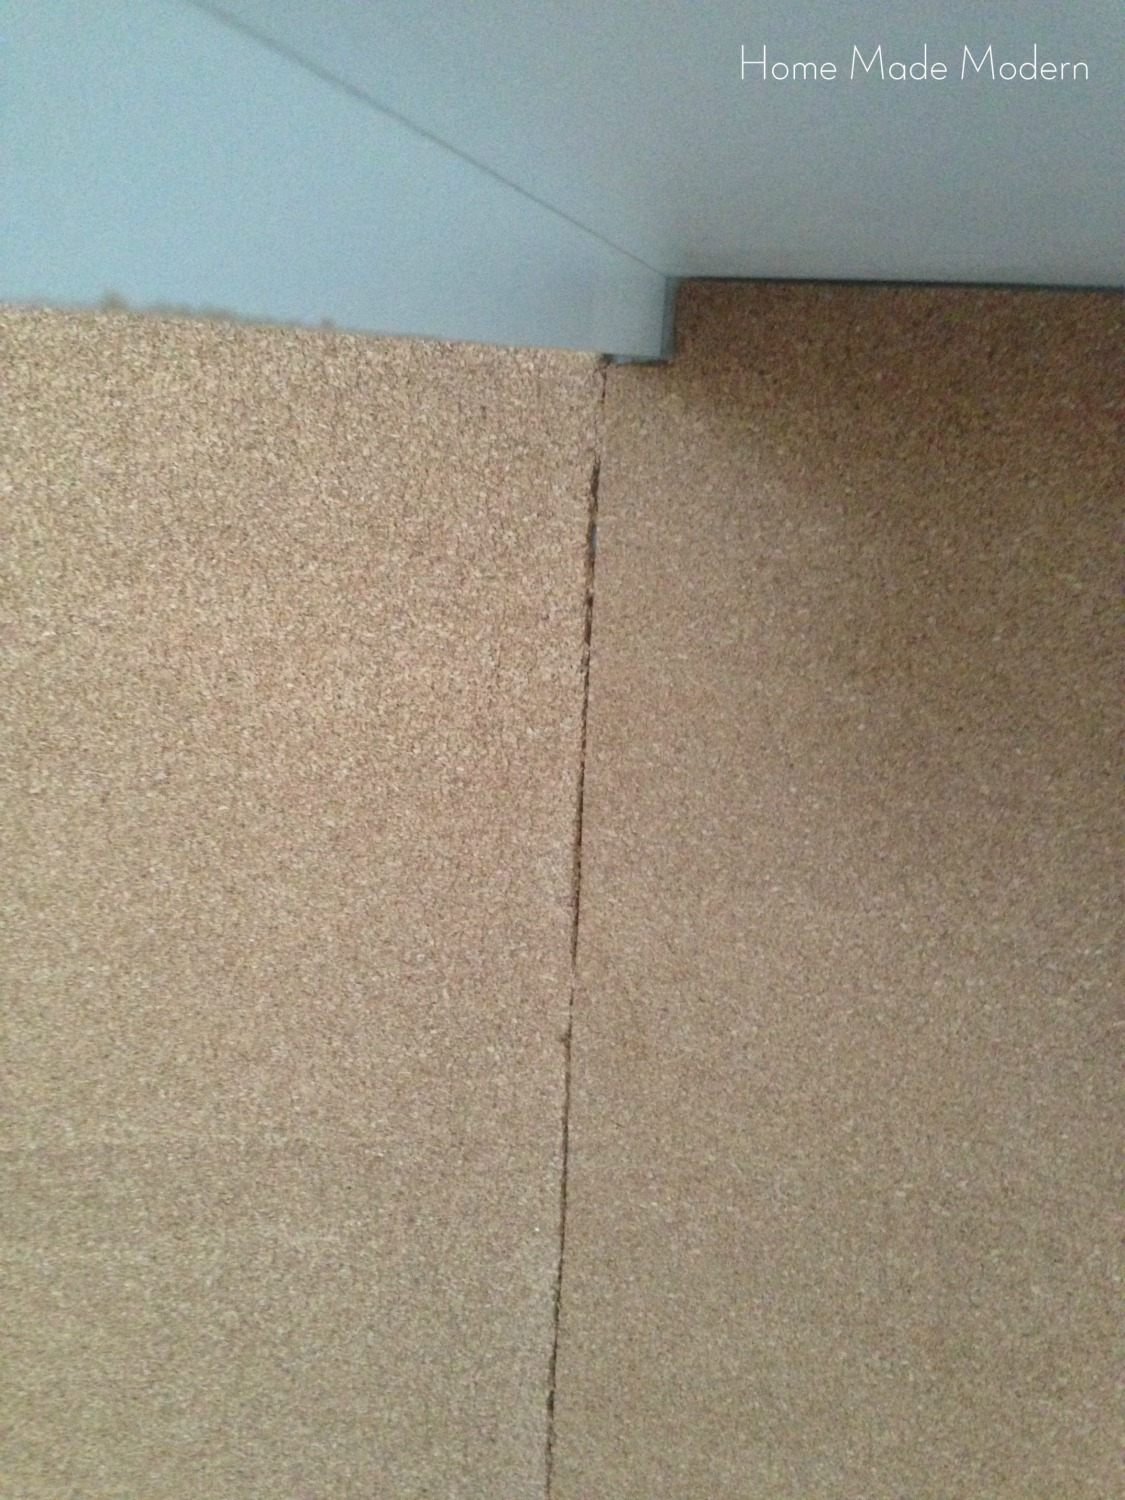 Cork board wall cork board wall cork wall tiles pared de corcho gallery of diy cork board home made modern with cork board wall gumiabroncs Image collections